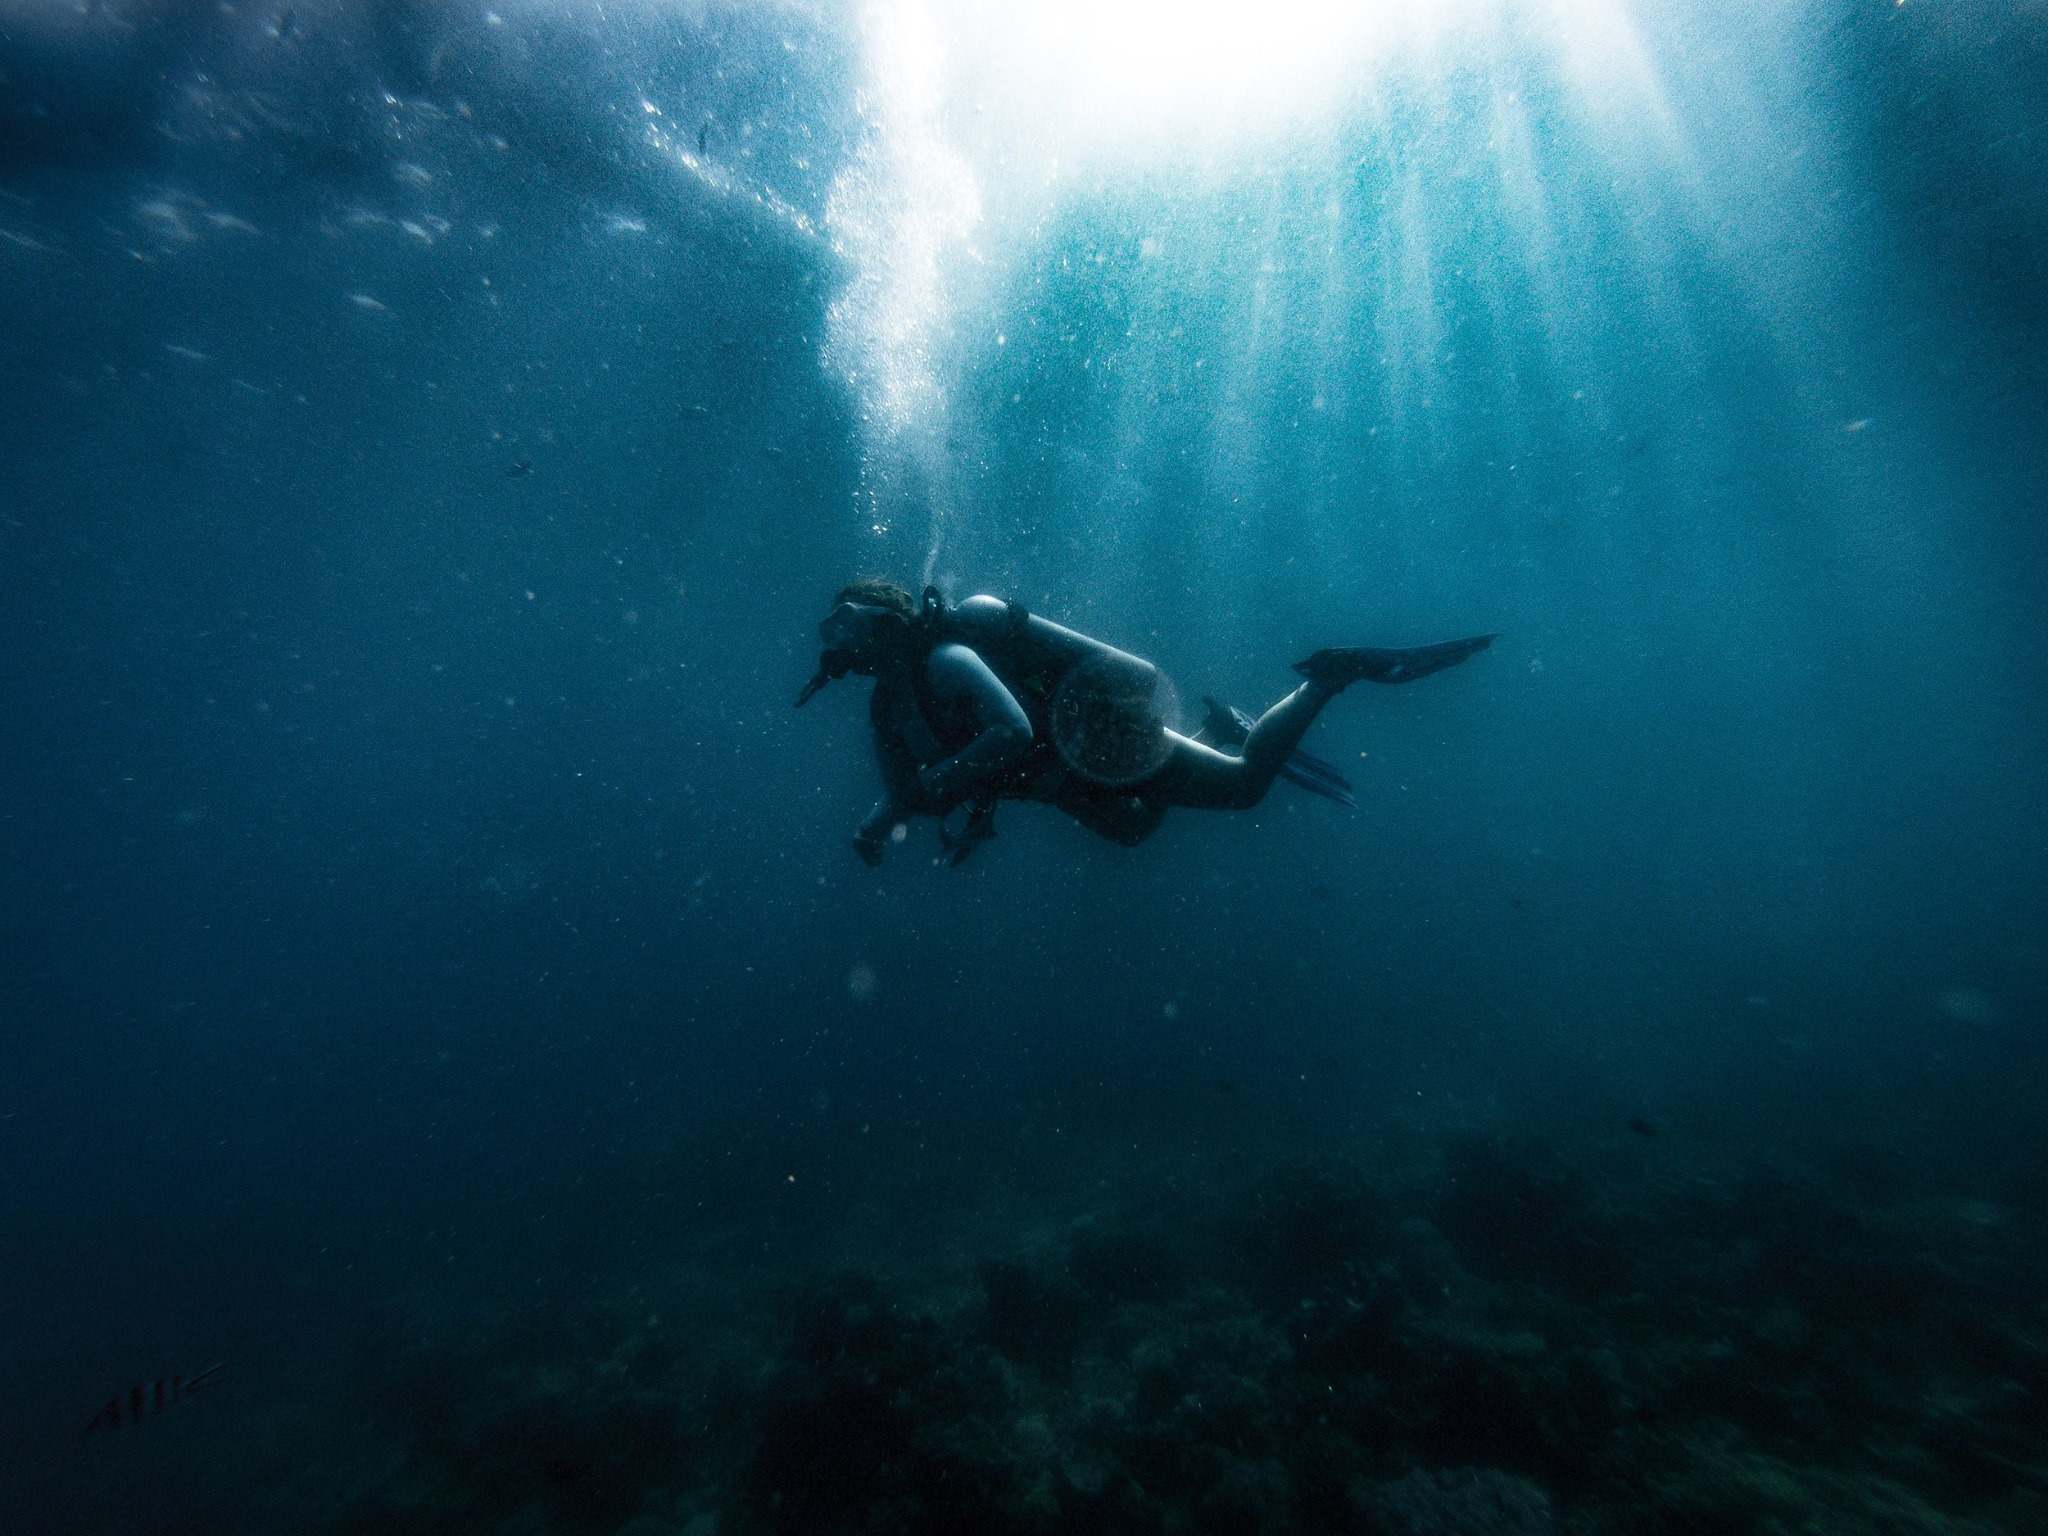 This image was shot on a Hero 5 about 15 feet underwater.